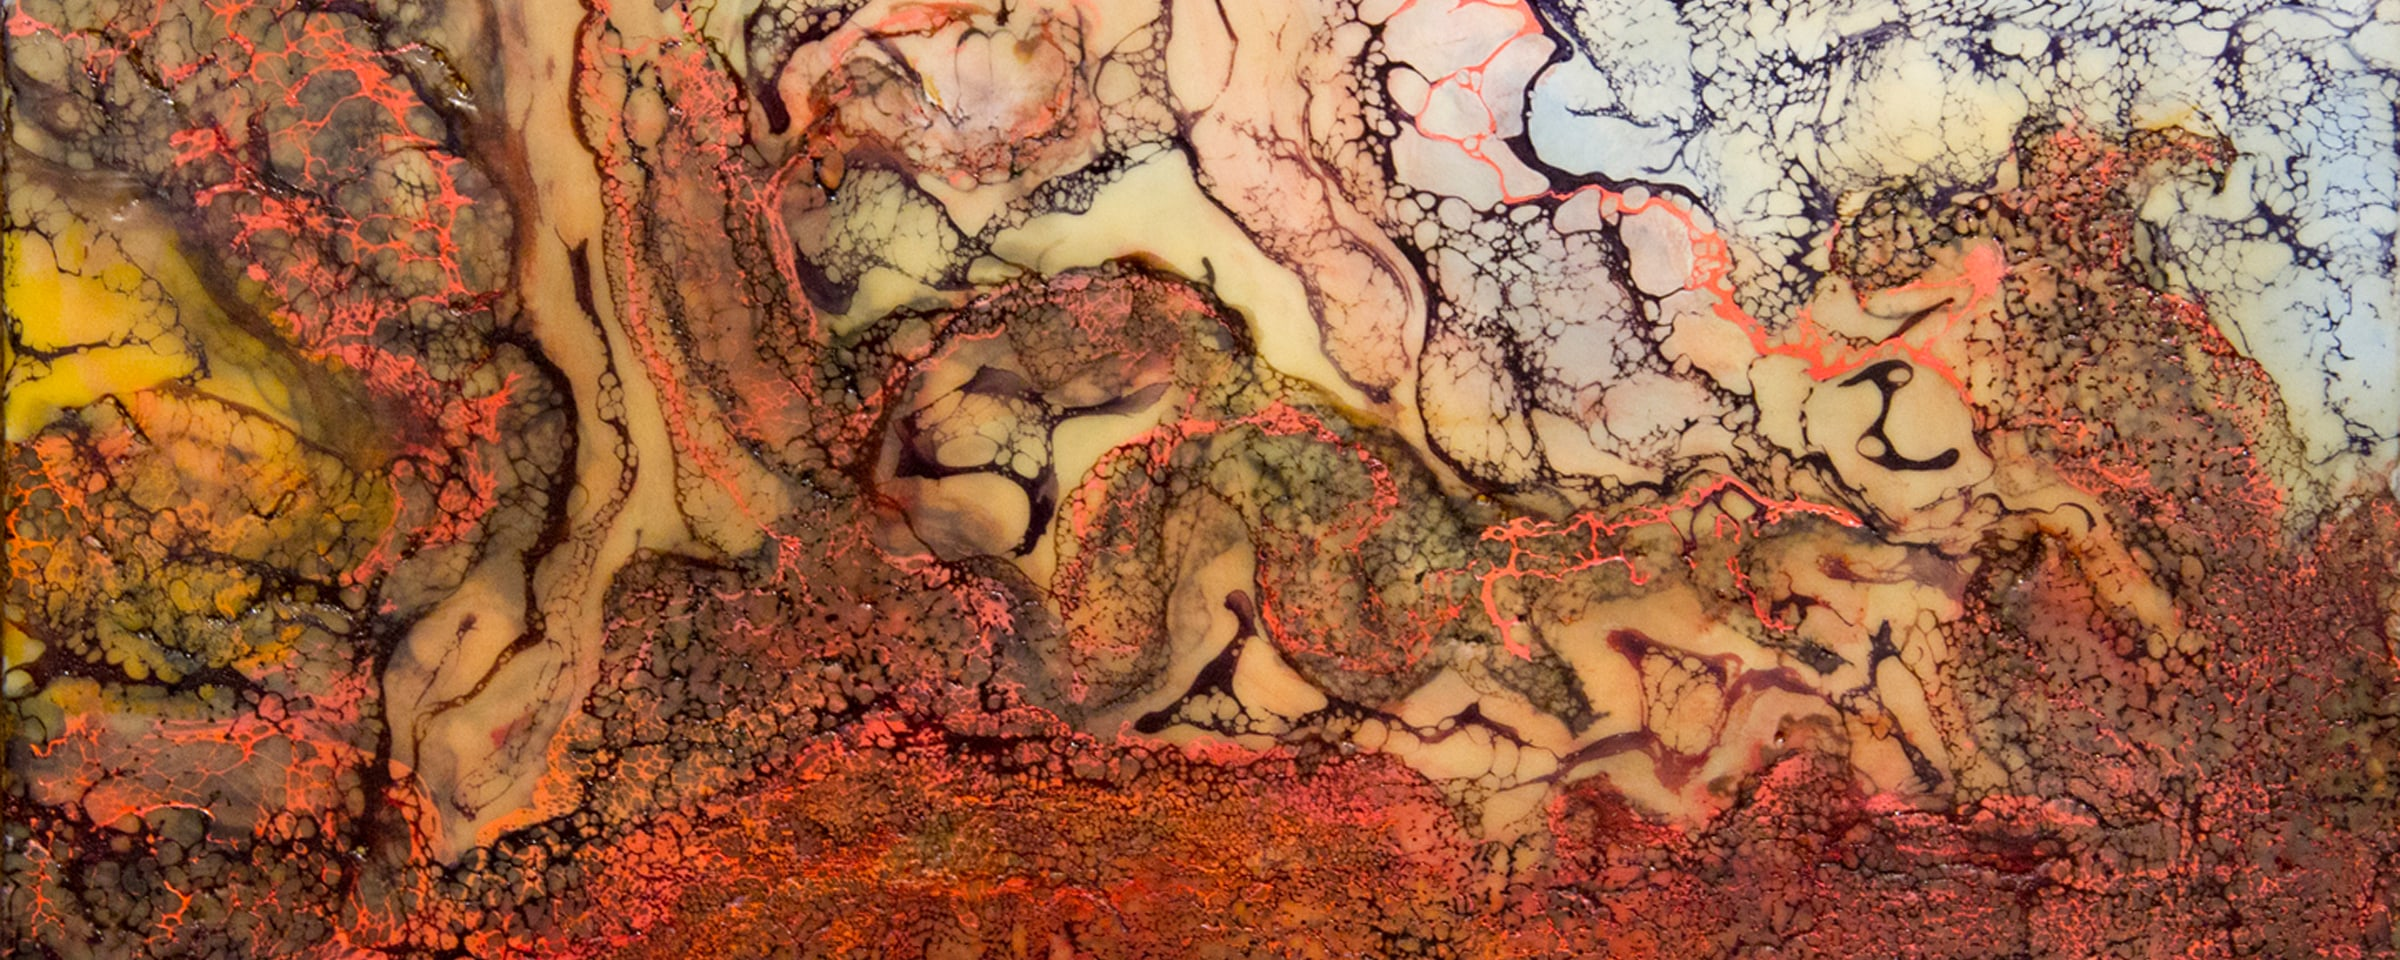 <div class='title'>           Untitled Encaustic Shellac Burn web         </div>